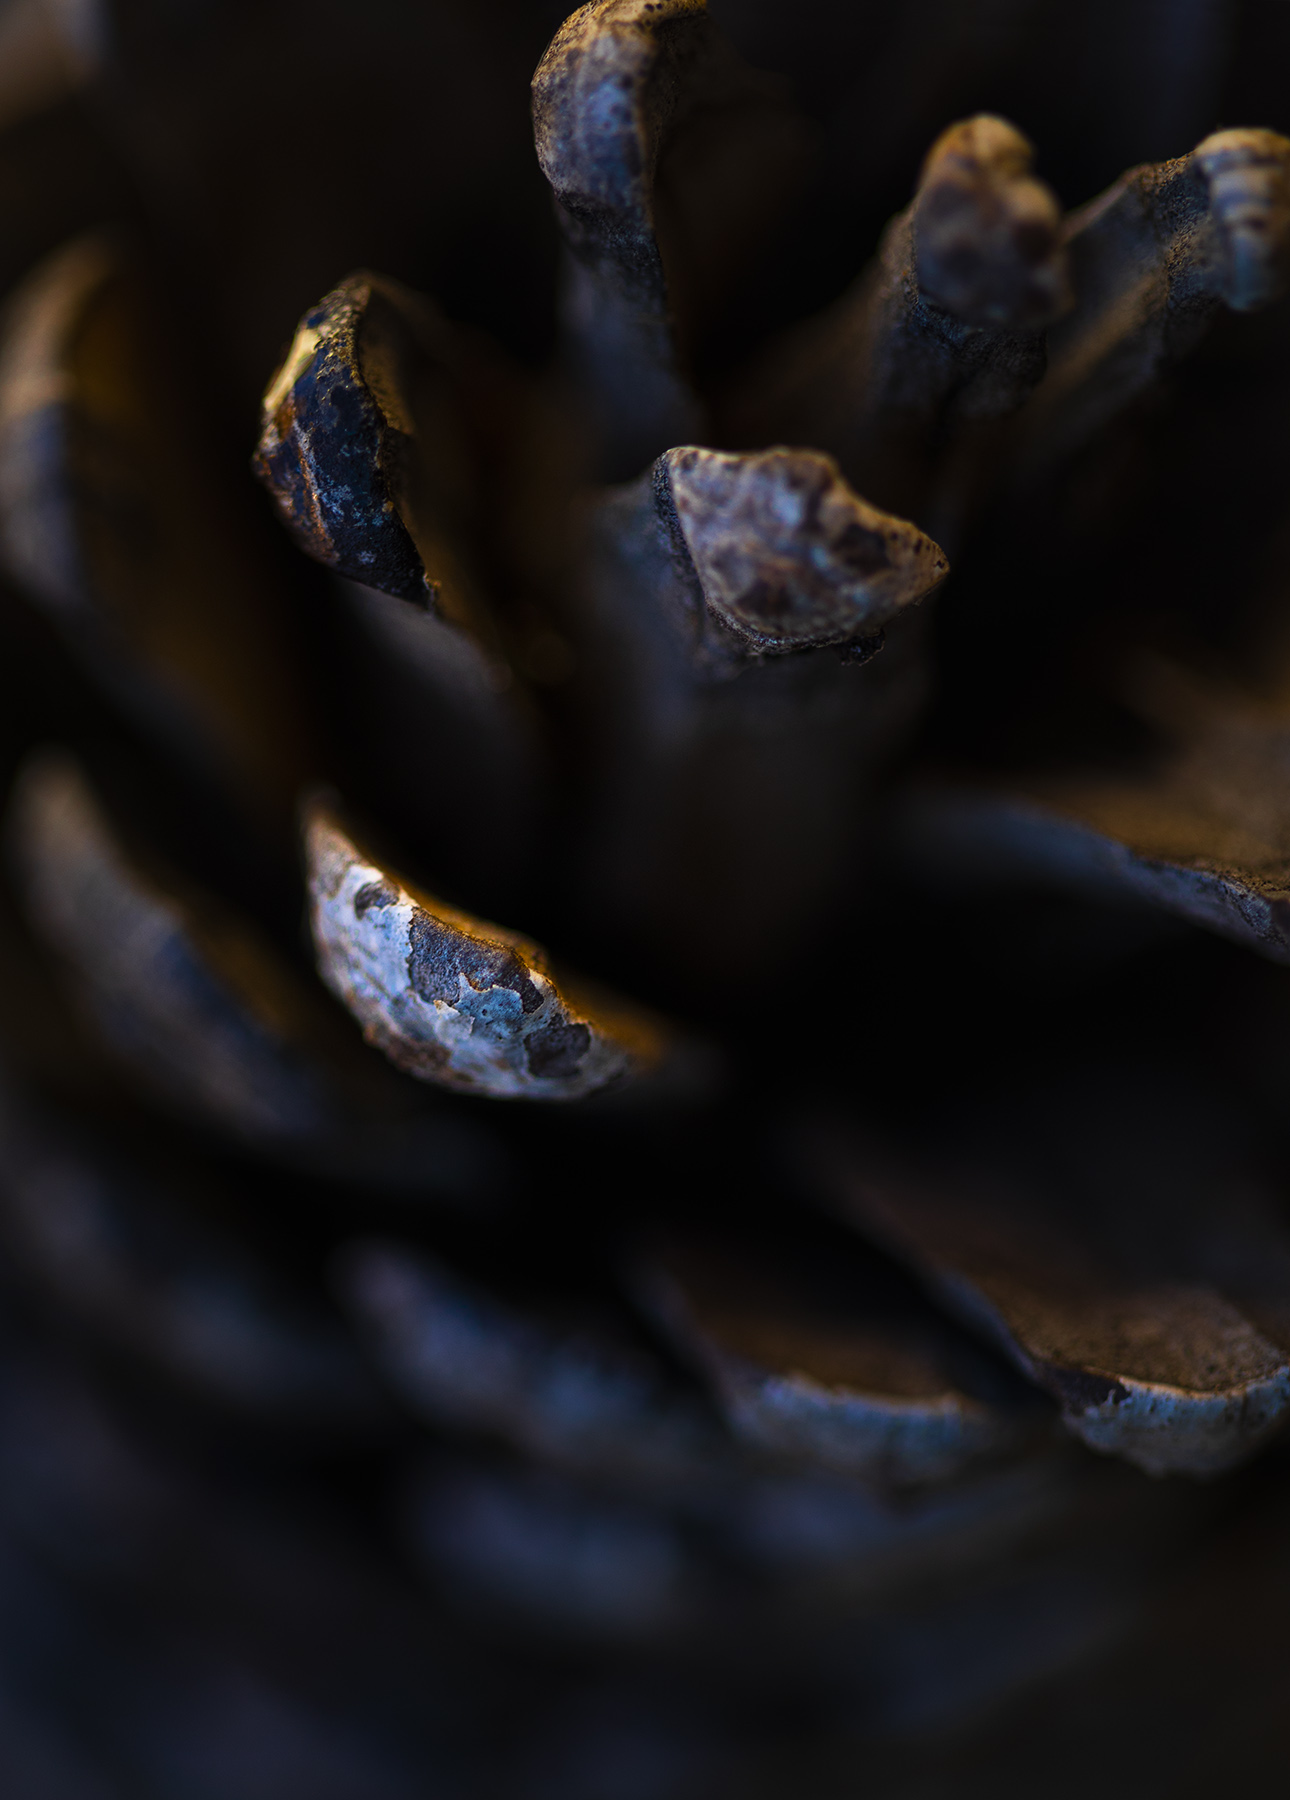 Pine cone, close up, My Backyard. Paul Scott, personal project.